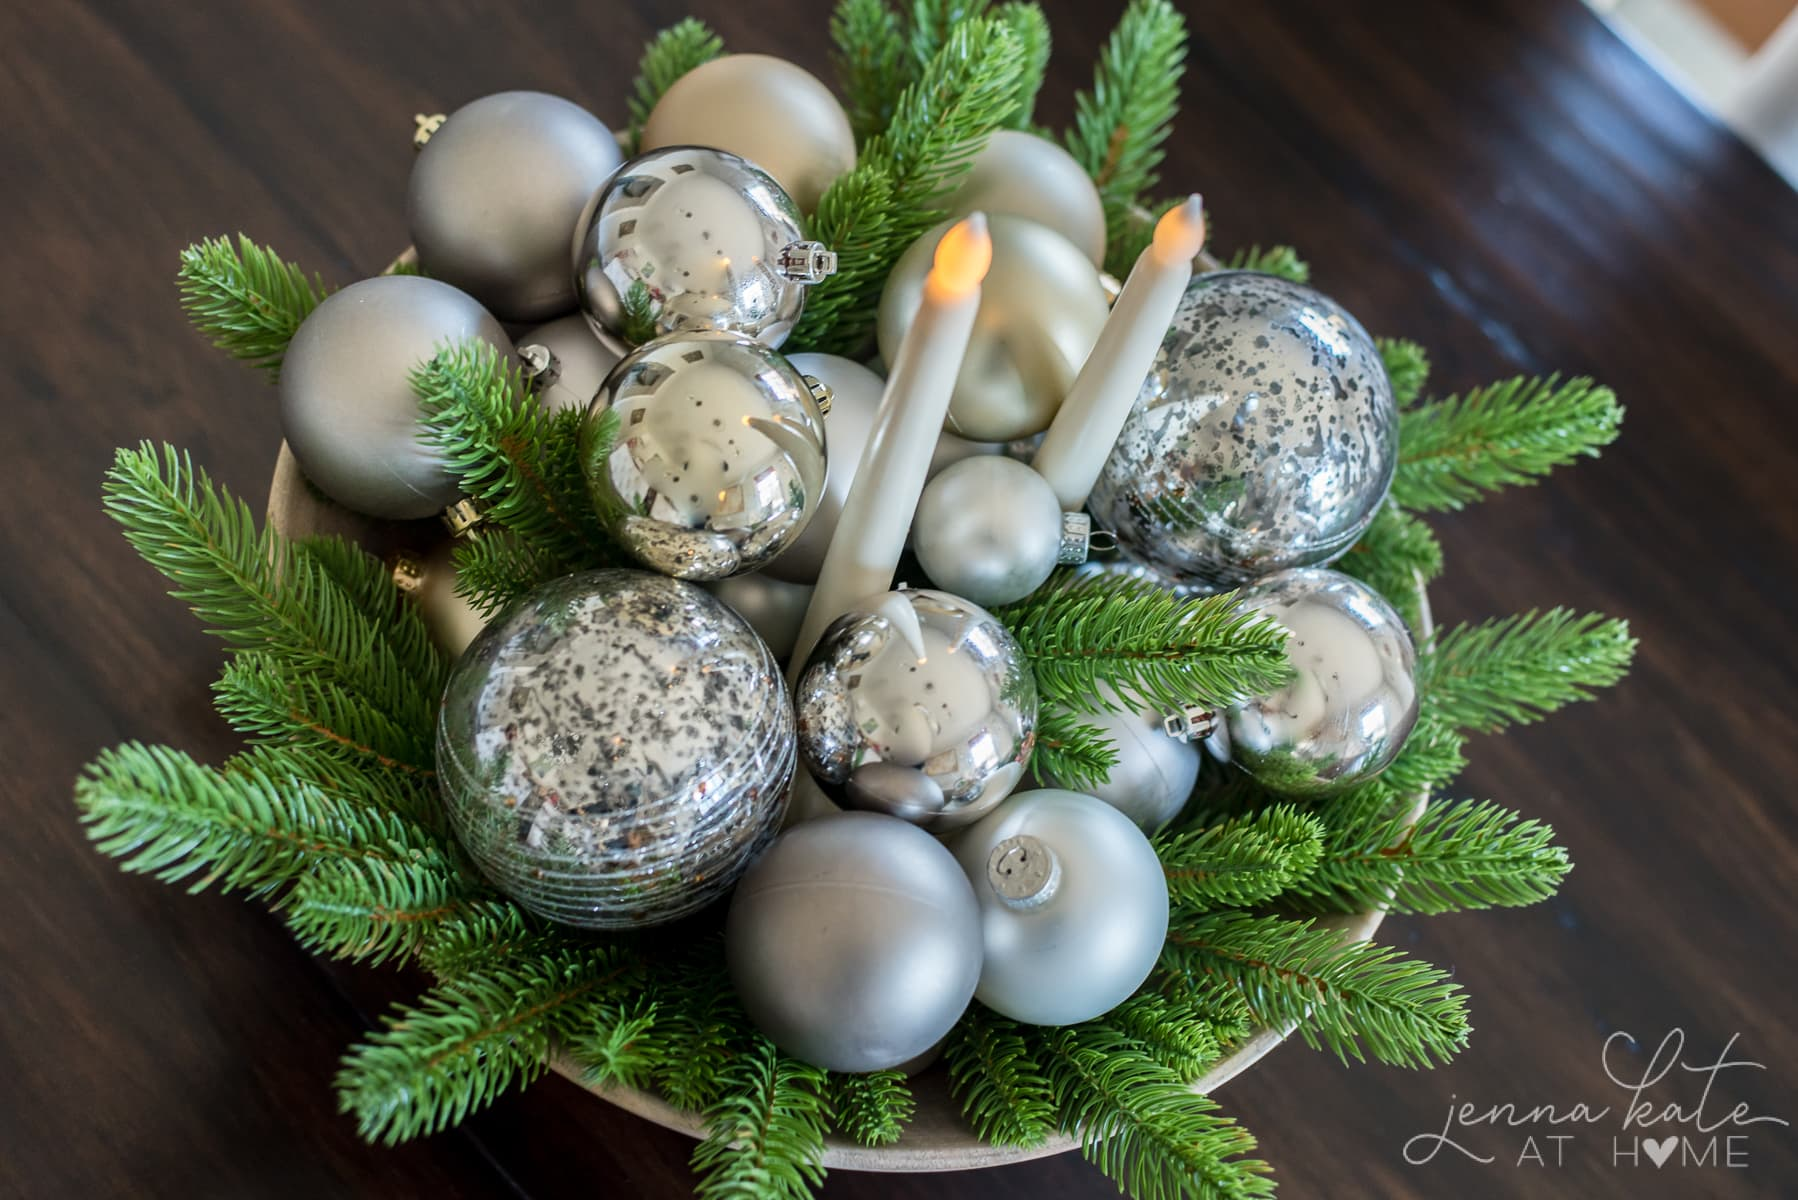 An uncluttered minimalist center piece idea of a bowl filled with ornaments